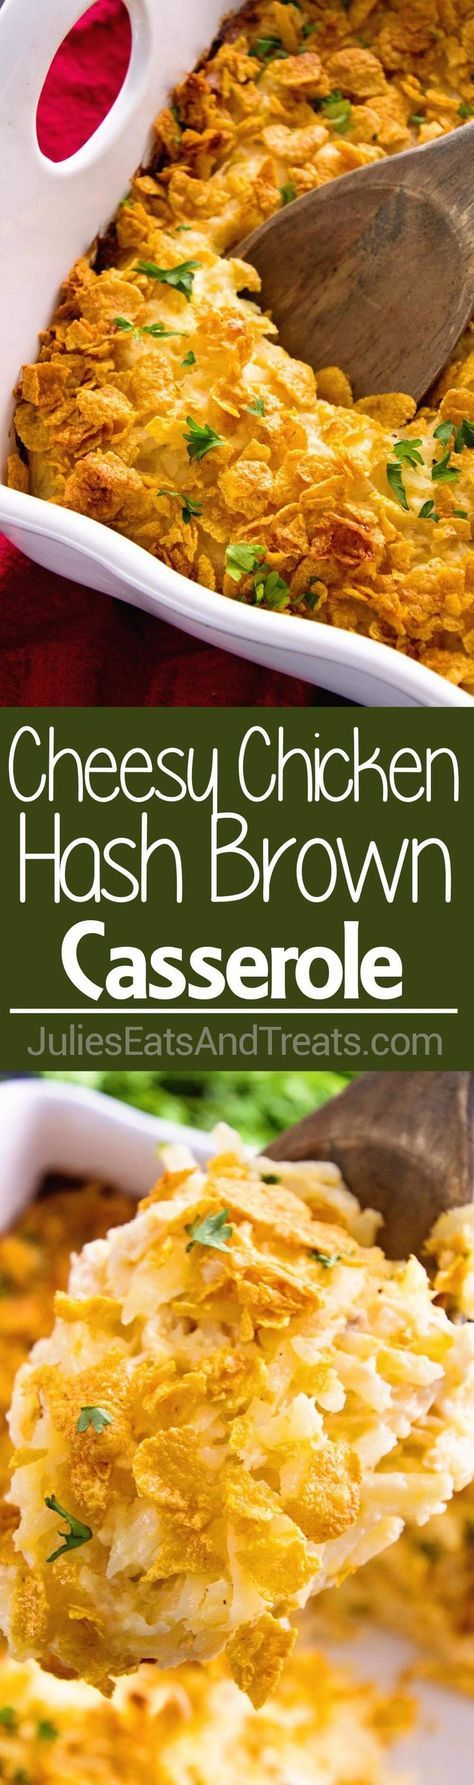 Cheesy Hash Brown Chicken Casserole ~ Your Favorite Cheesy Hash Brown Casserole In a Main Dish! Comforting Casserole Loaded with Hash Browns, Cheese, and Chicken Perfect for Dinner! ~ http://www.julieseatsandtreats.com